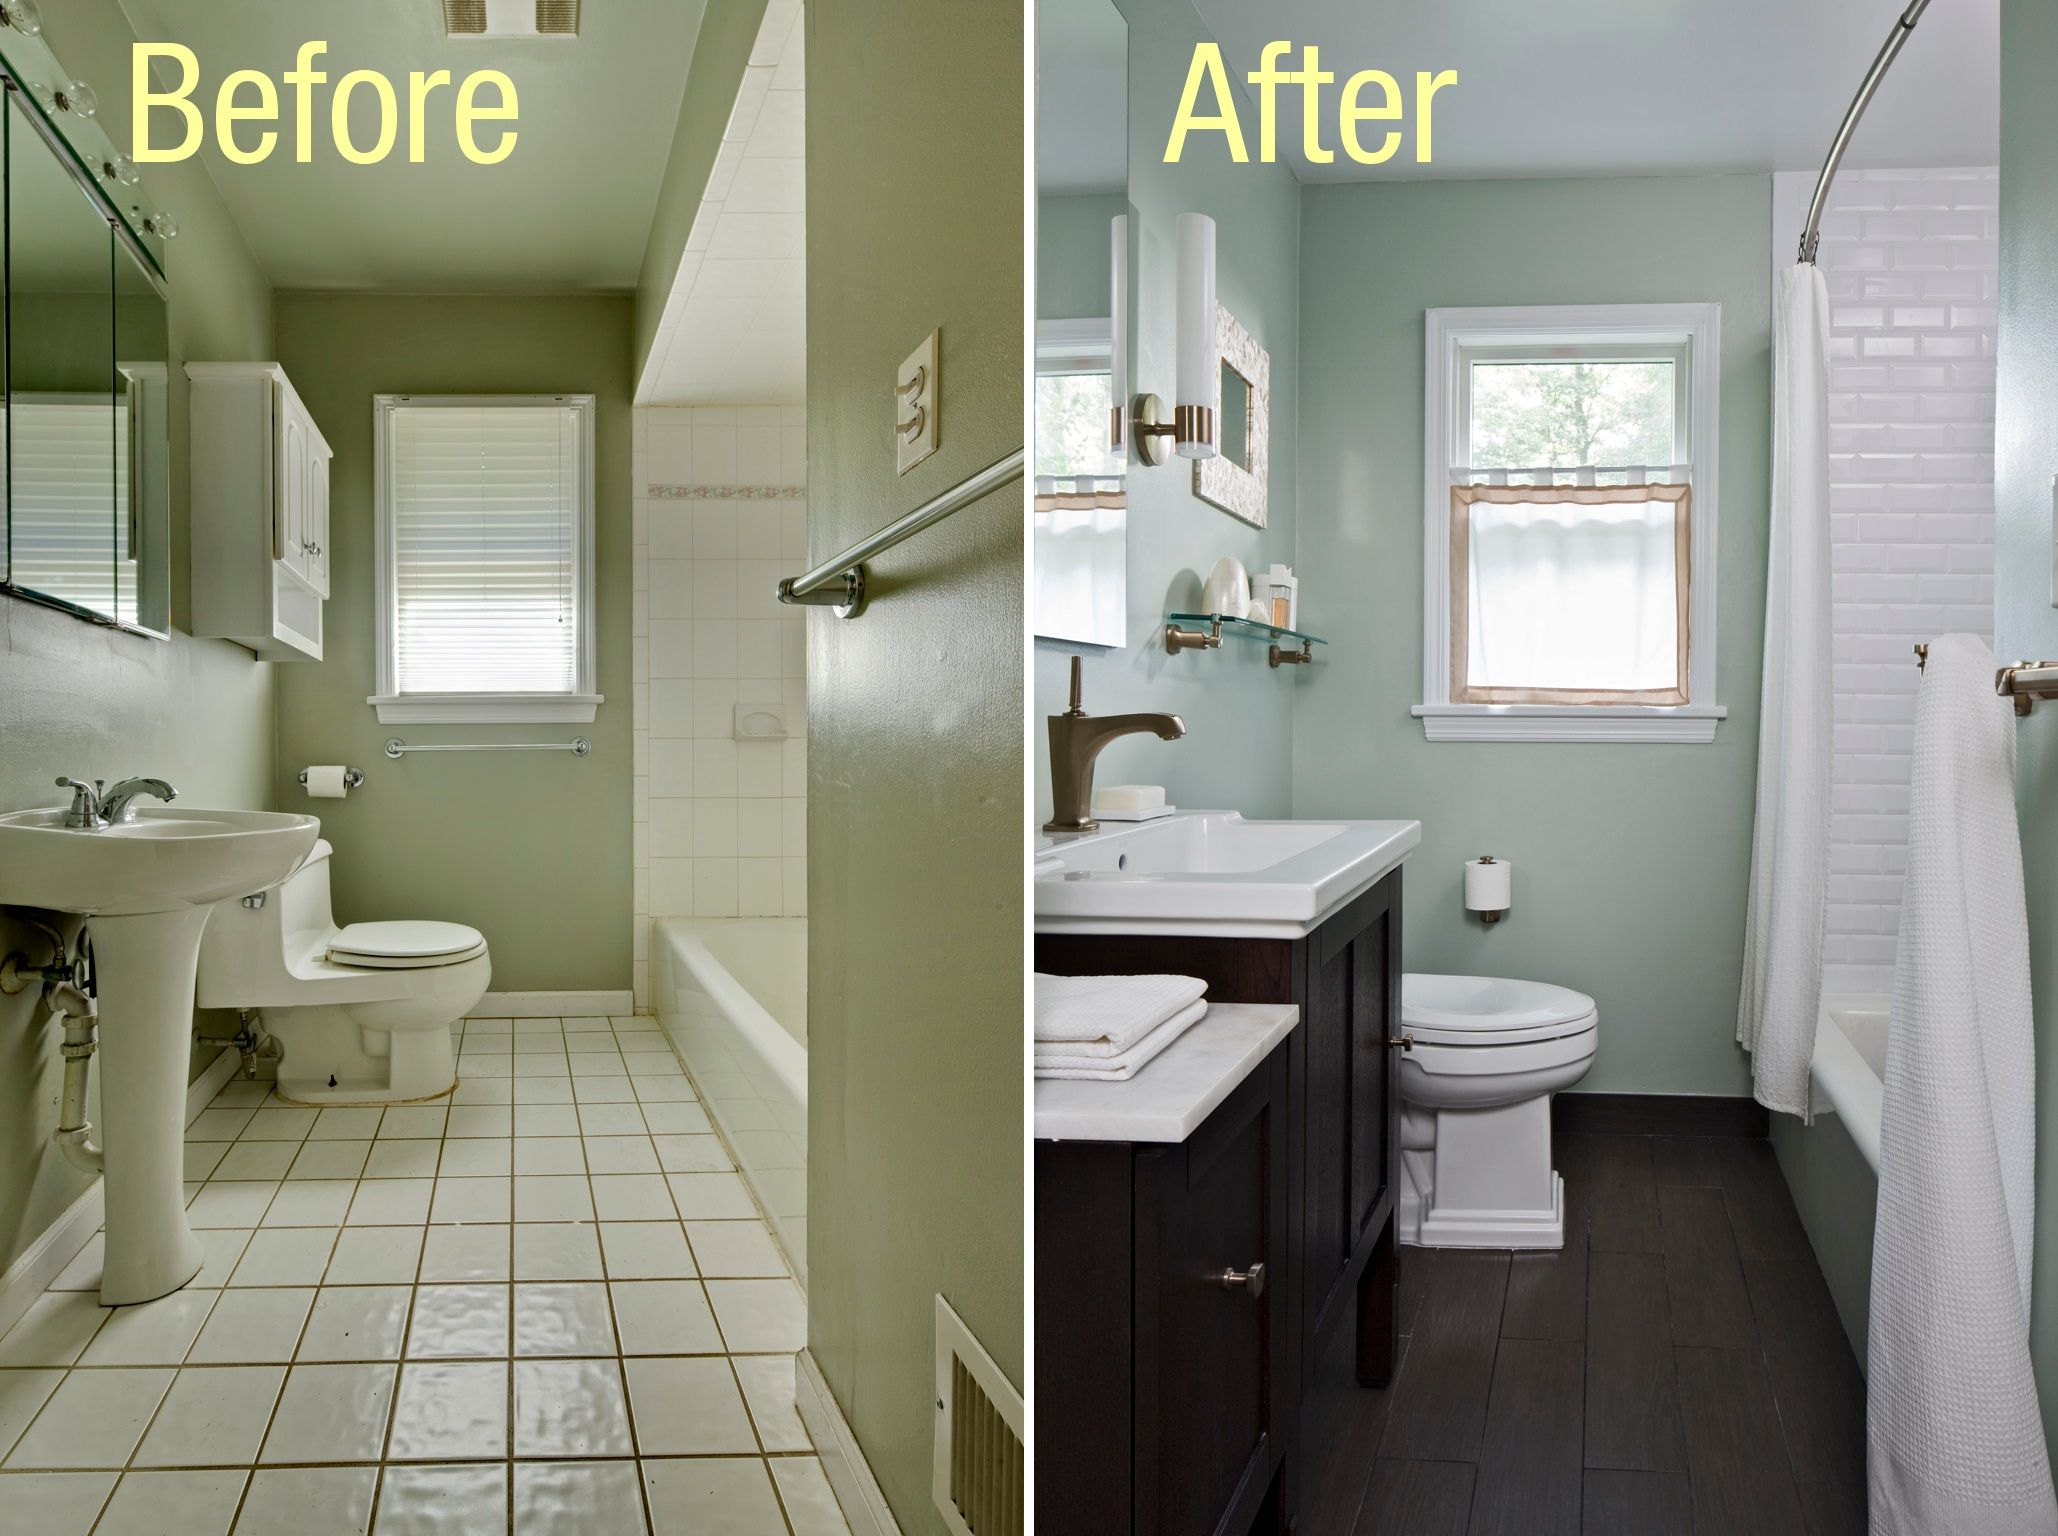 55  Bathroom Remodel Ideas   Remodeling Ideas      Pinterest     Bathroom Remodeling   Bathroom Remodel Ideas